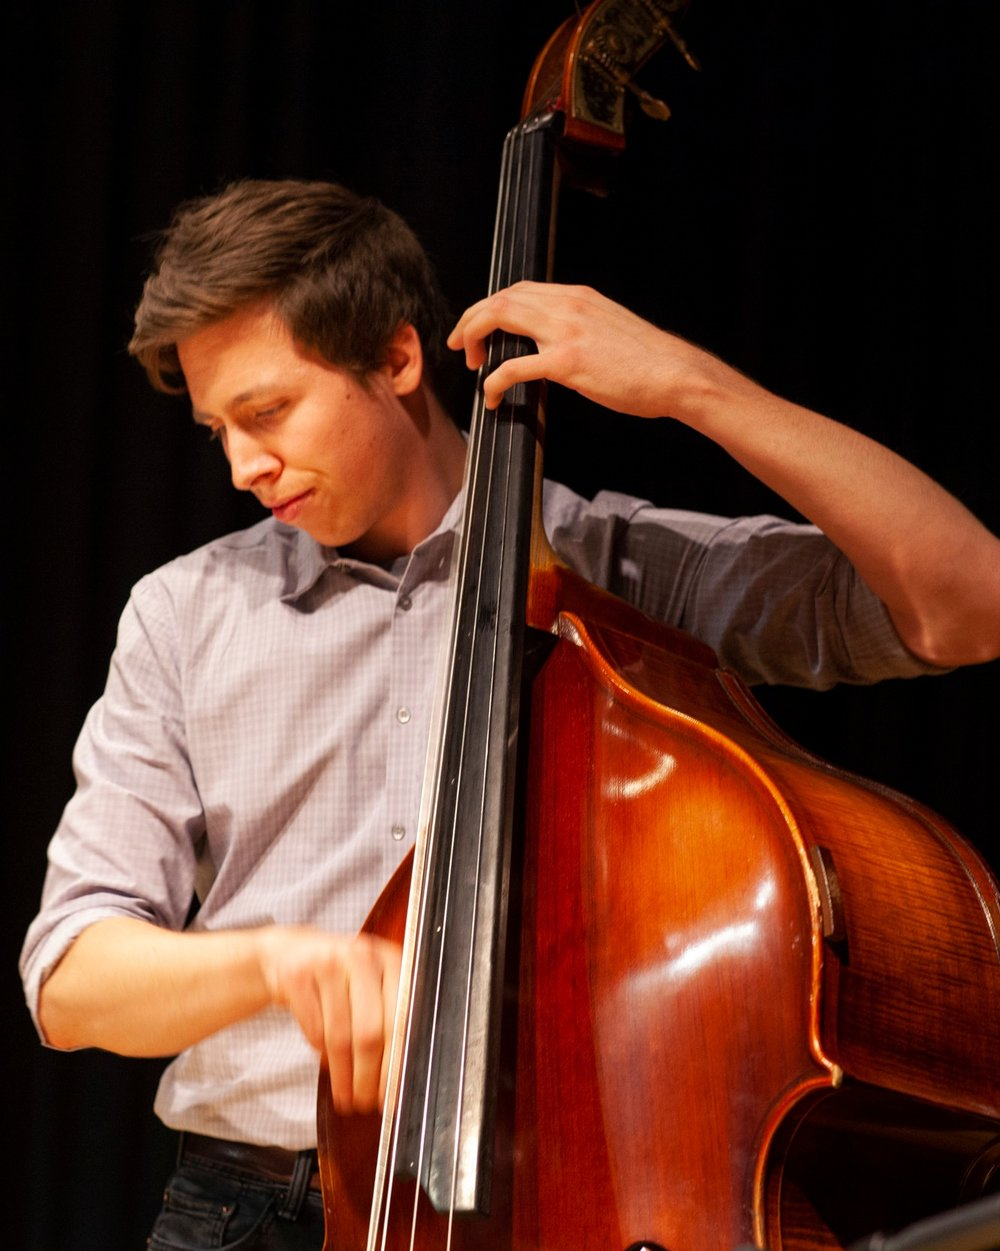 Eli Broxham - Eli makes Chicago his home and performs with a wide variety of ensembles including traditional and progressive bluegrass, old-time, western swing, gypsy jazz, country, rock and roll, and Latin folk.Eli graduated from DePaul University in 2016 with a degree in Bass Performance and uses his classical training, melded with his love of folk styles, to push the boundaries of the bassist's role in an ensemble.You can find him playing his own music and other's at venues all over the city ranging from Cole's bar, to Fitzgerald's, The Old Town School of Folk Music, City Winery, and even Symphony Center.